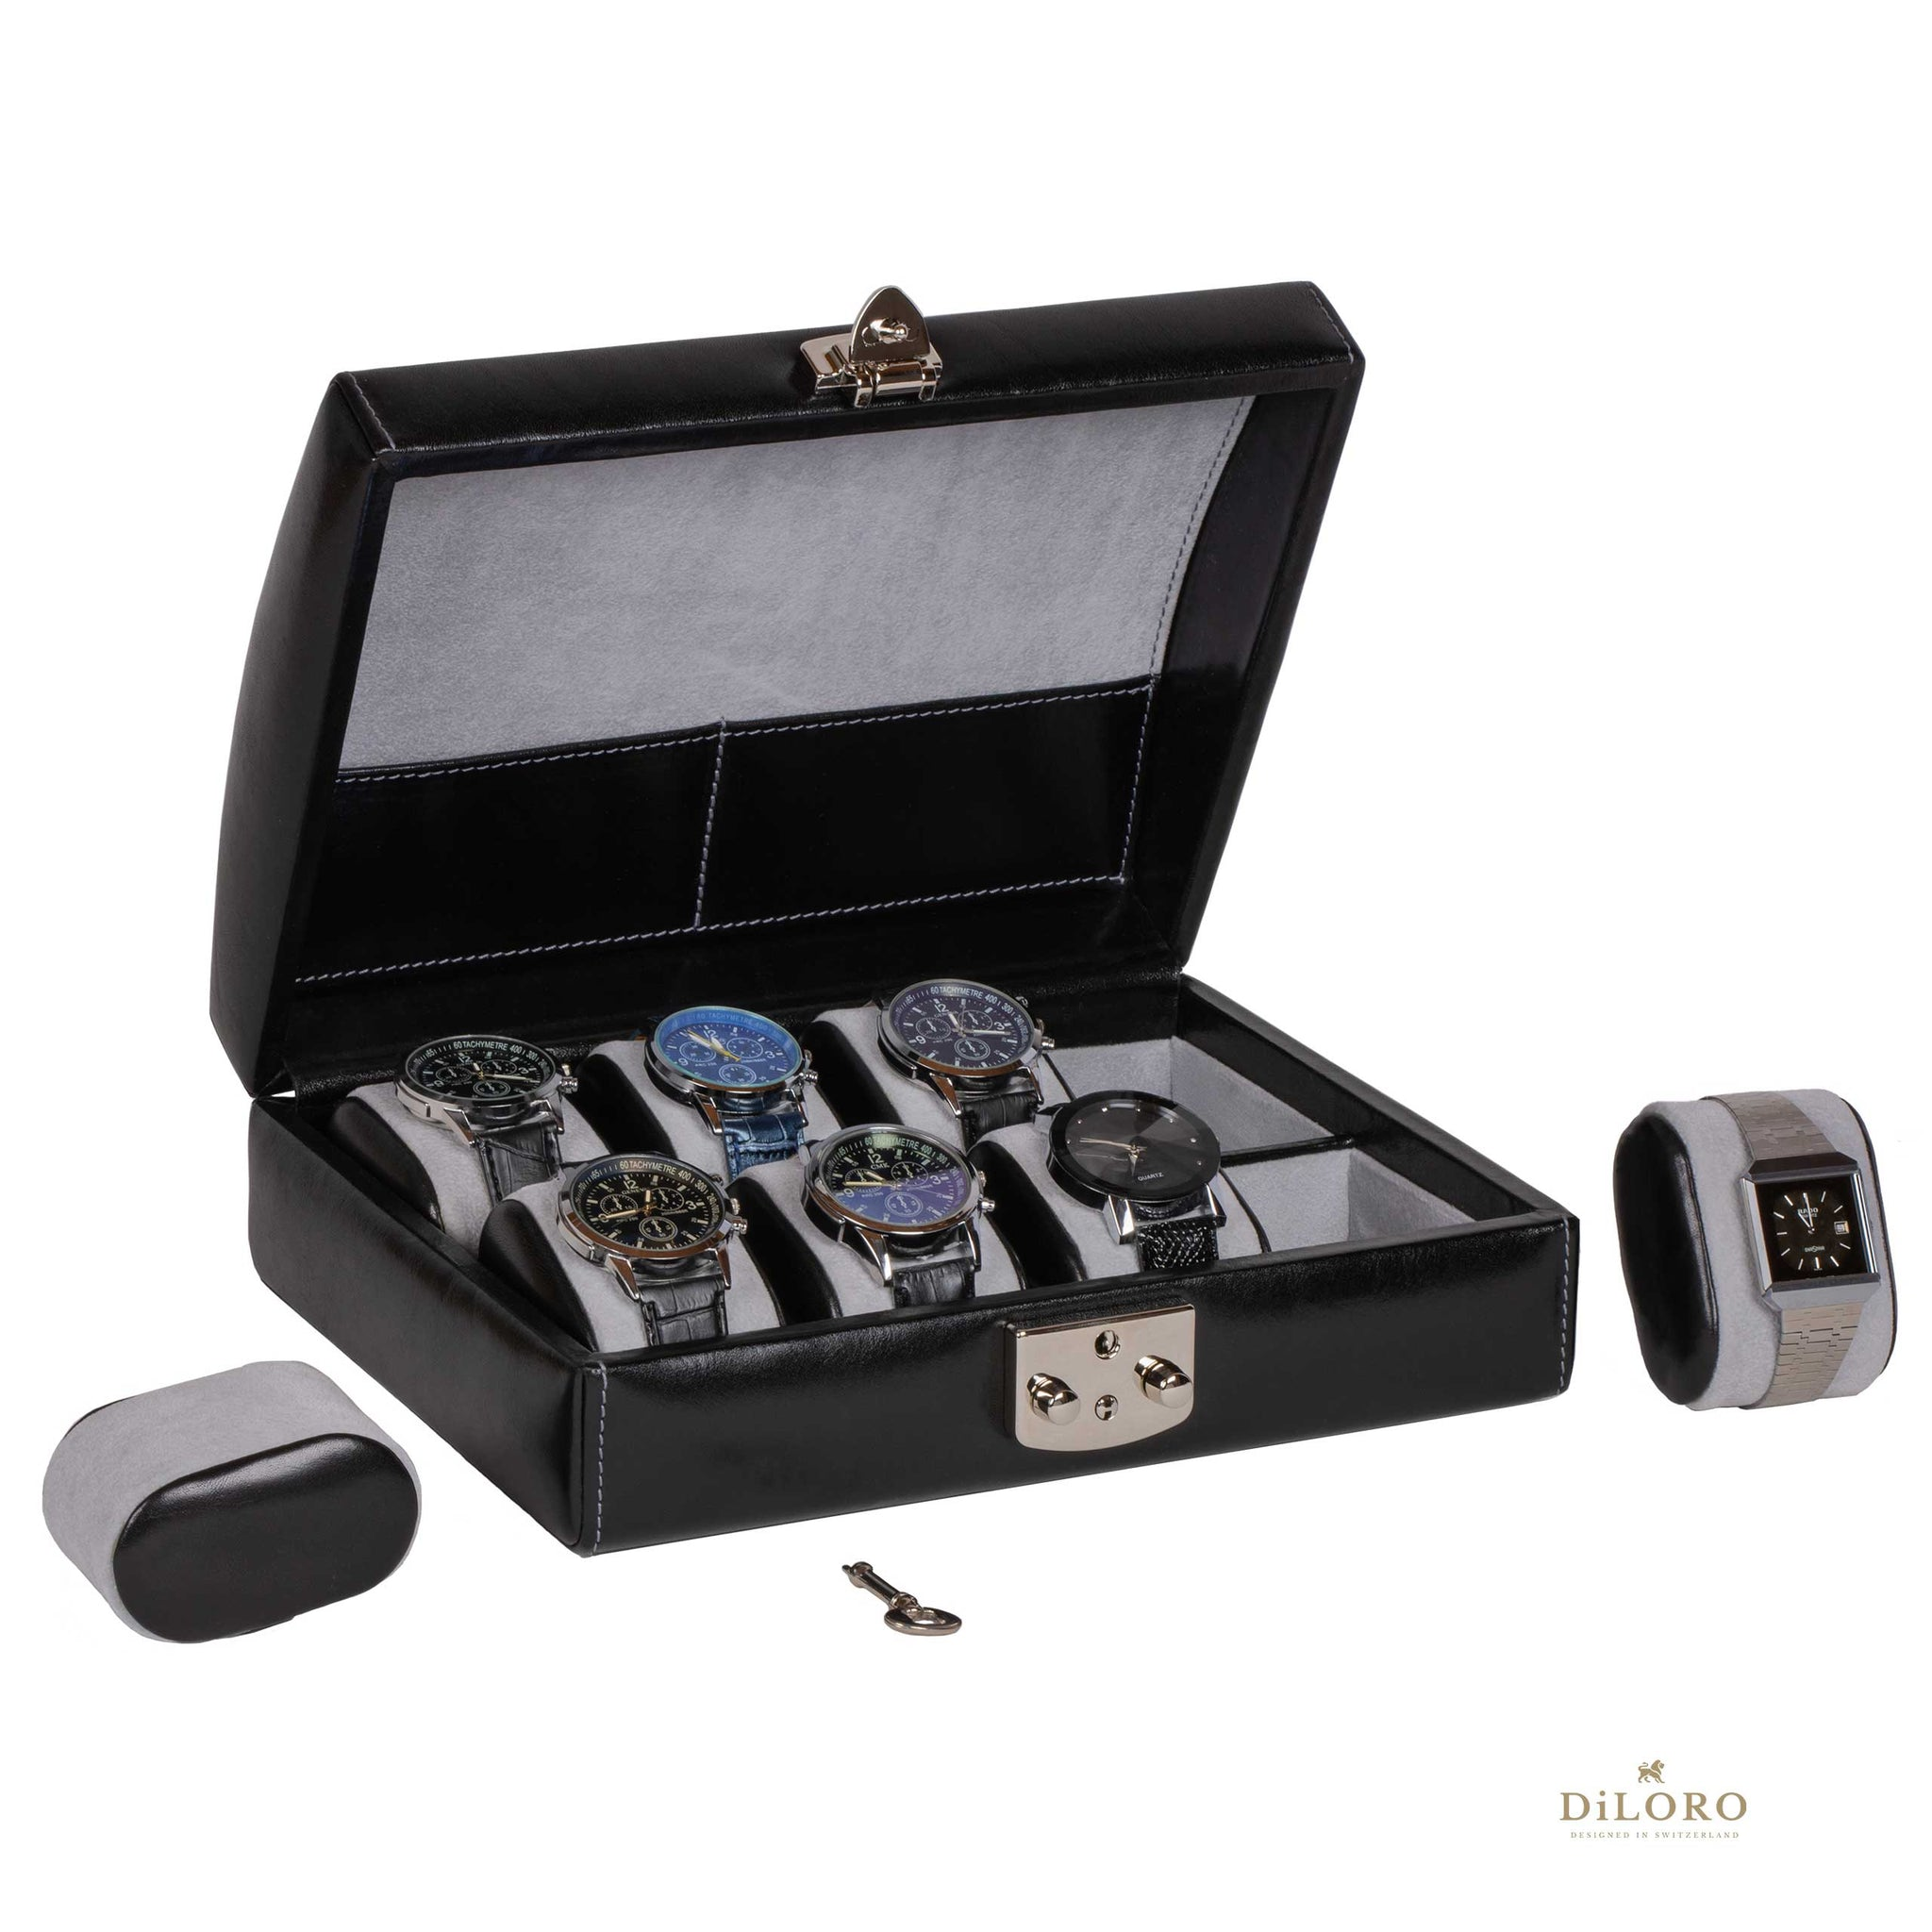 DiLoro Italian Leather Travel Watch Case Holds Eight Watches Midnight Black - Inside Open View (watch not included)